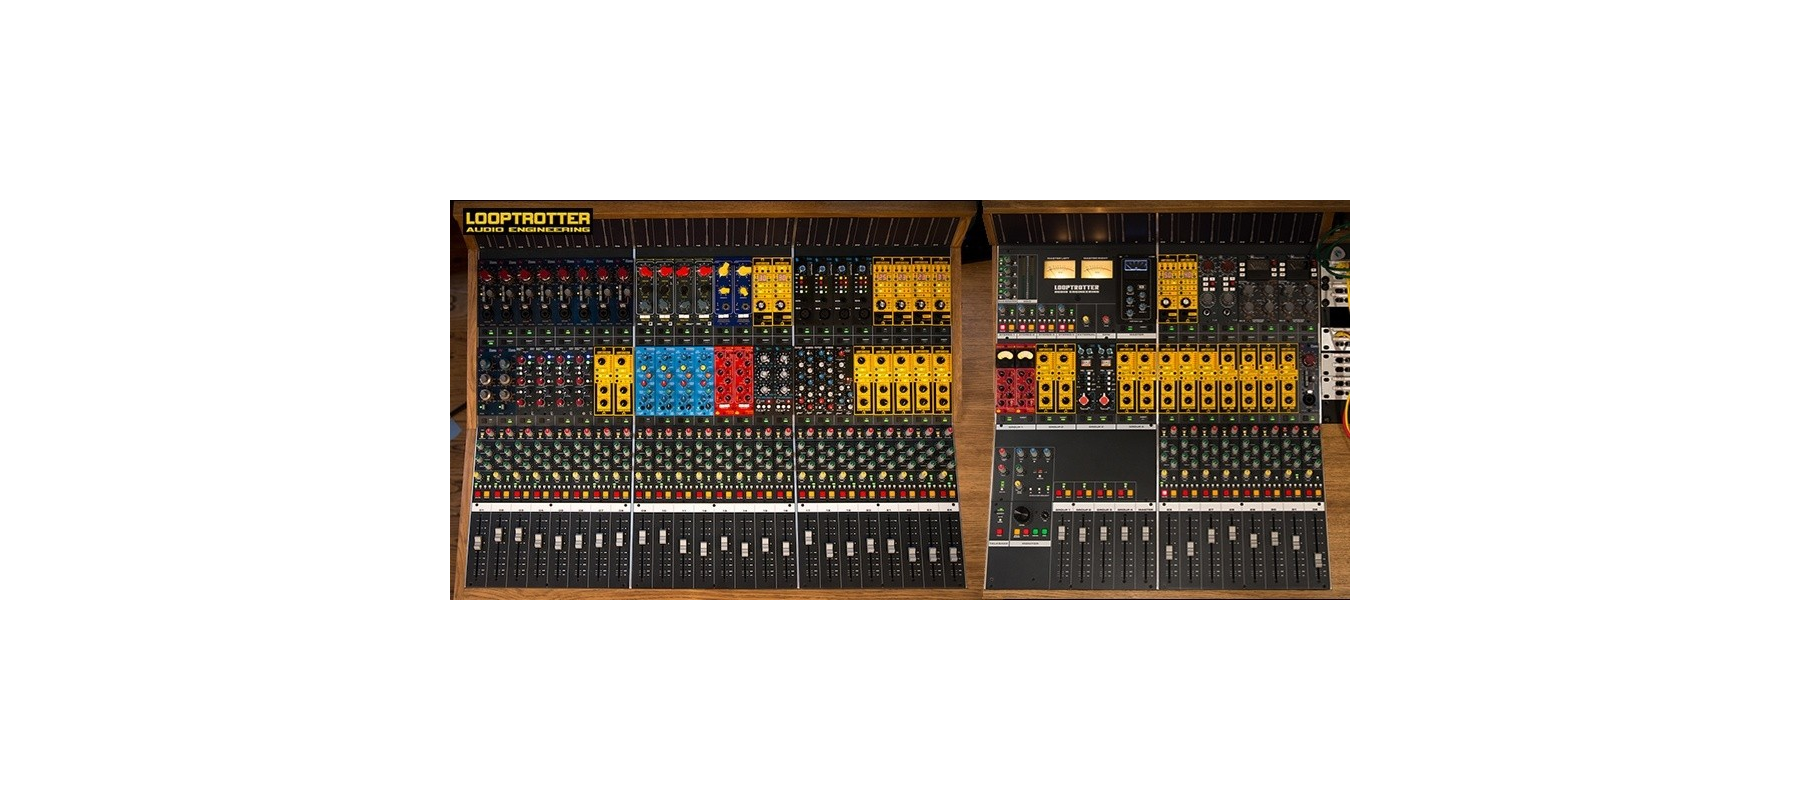 Looptrotter Modular Console 32 Channel